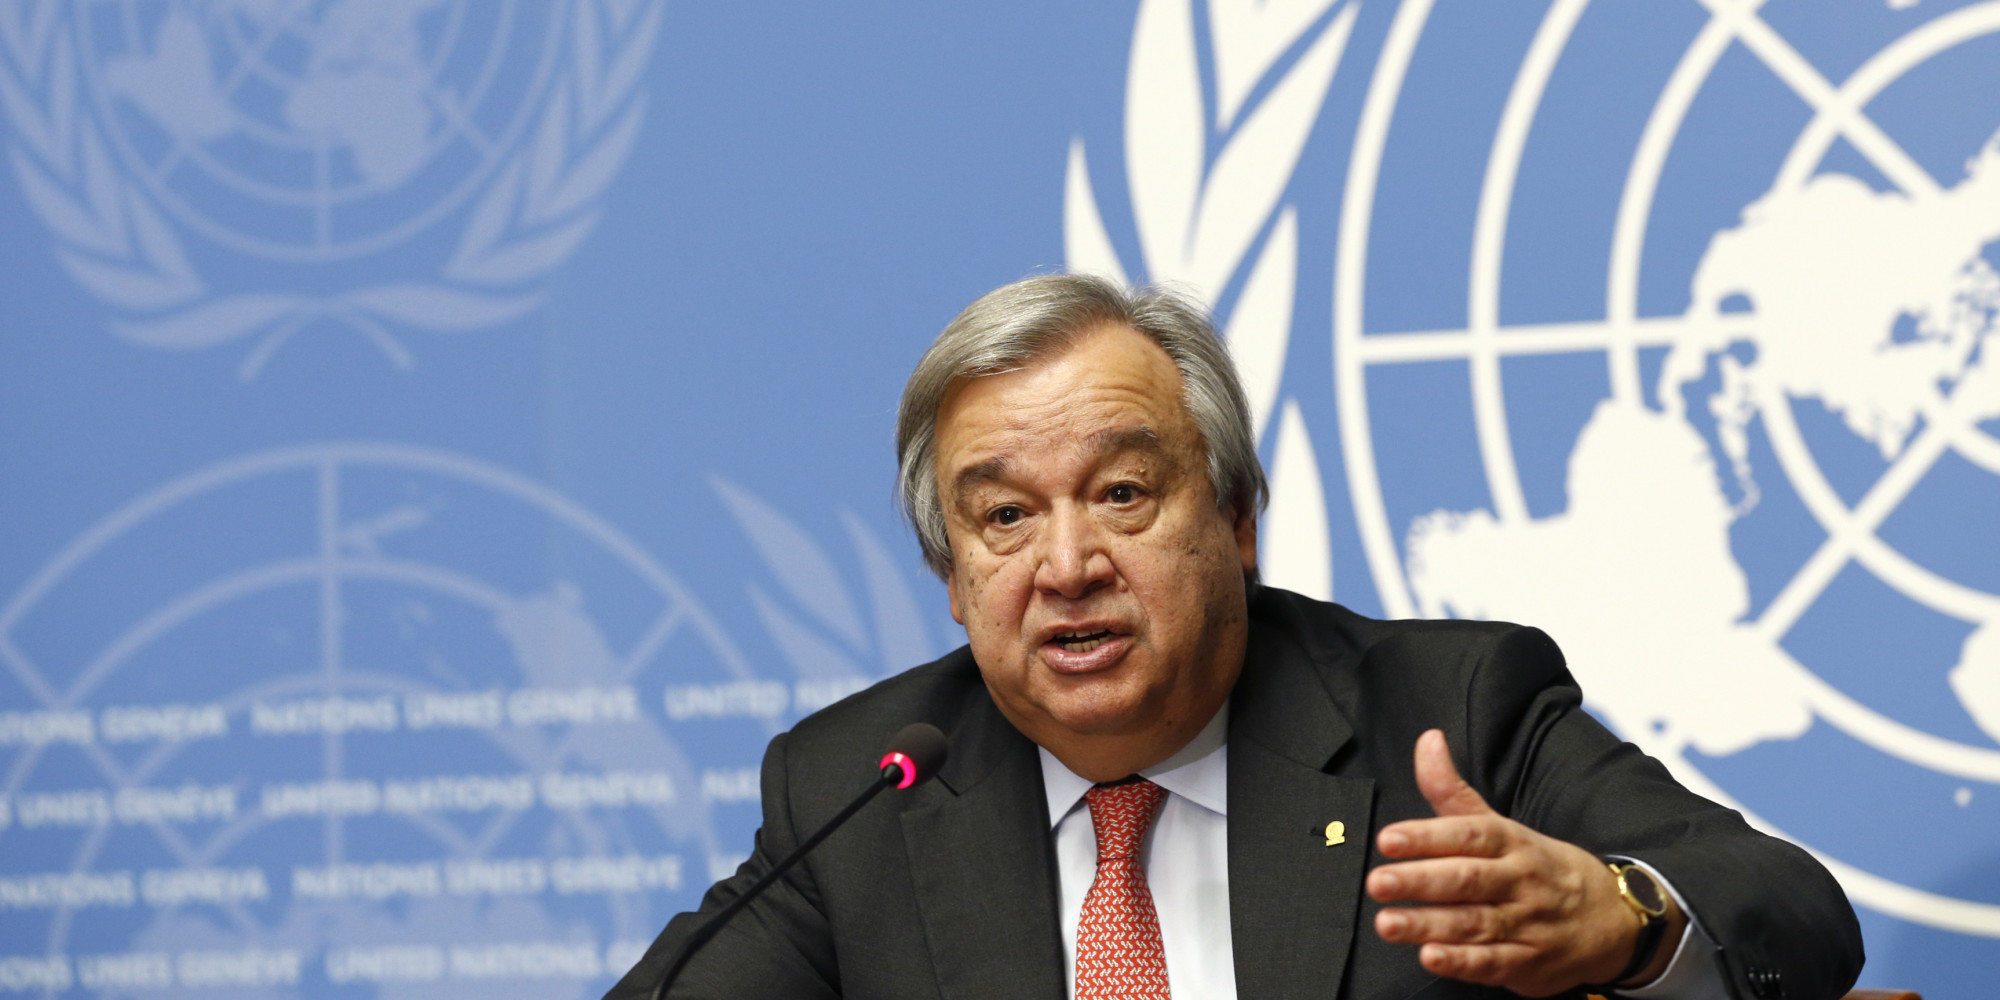 ONU: Antonio Guterres critique vertement le décret anti-immigration de Donald Trump